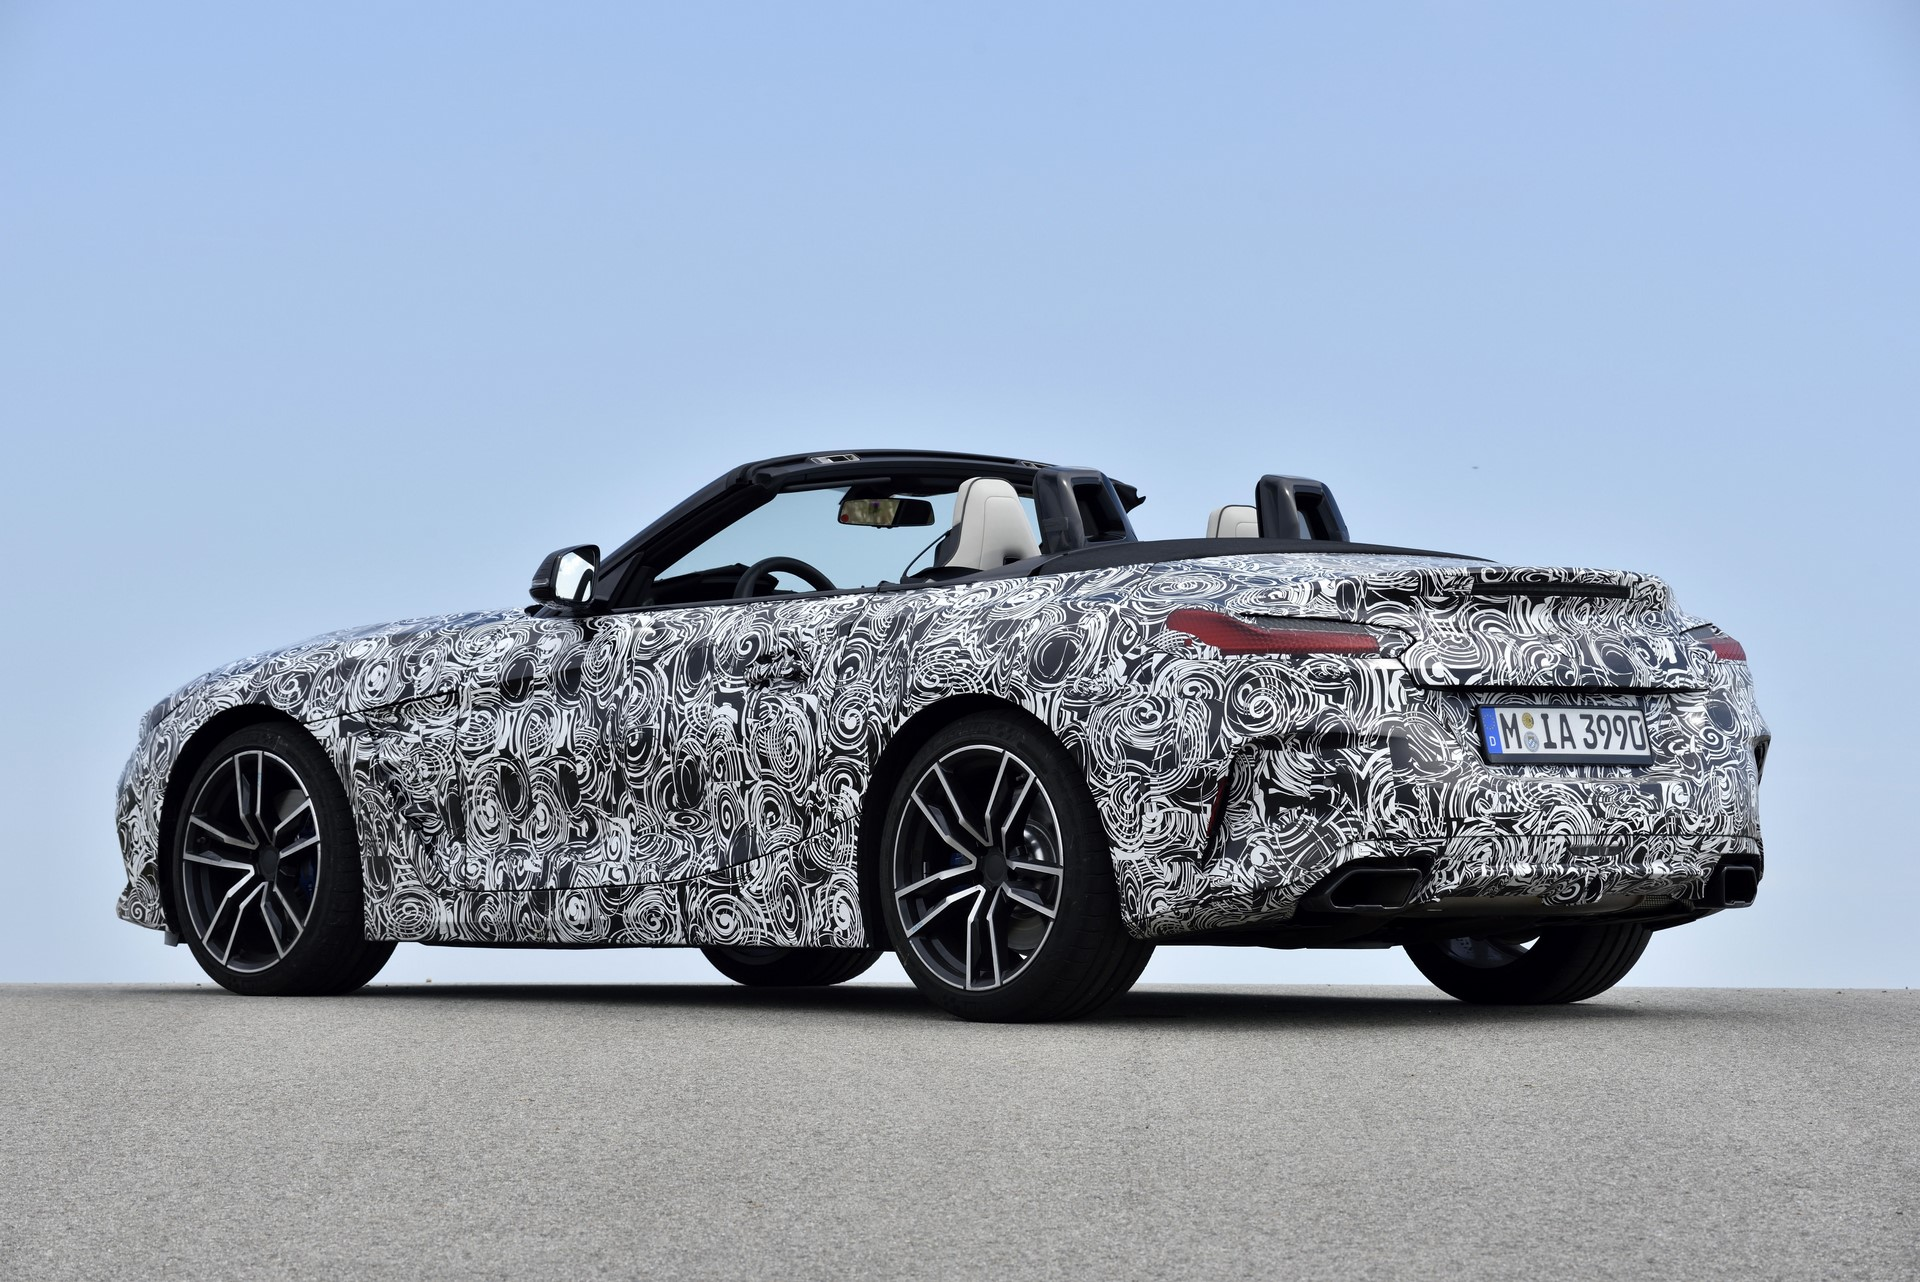 BMW Z4 M40i 2019 official spy photos (34)